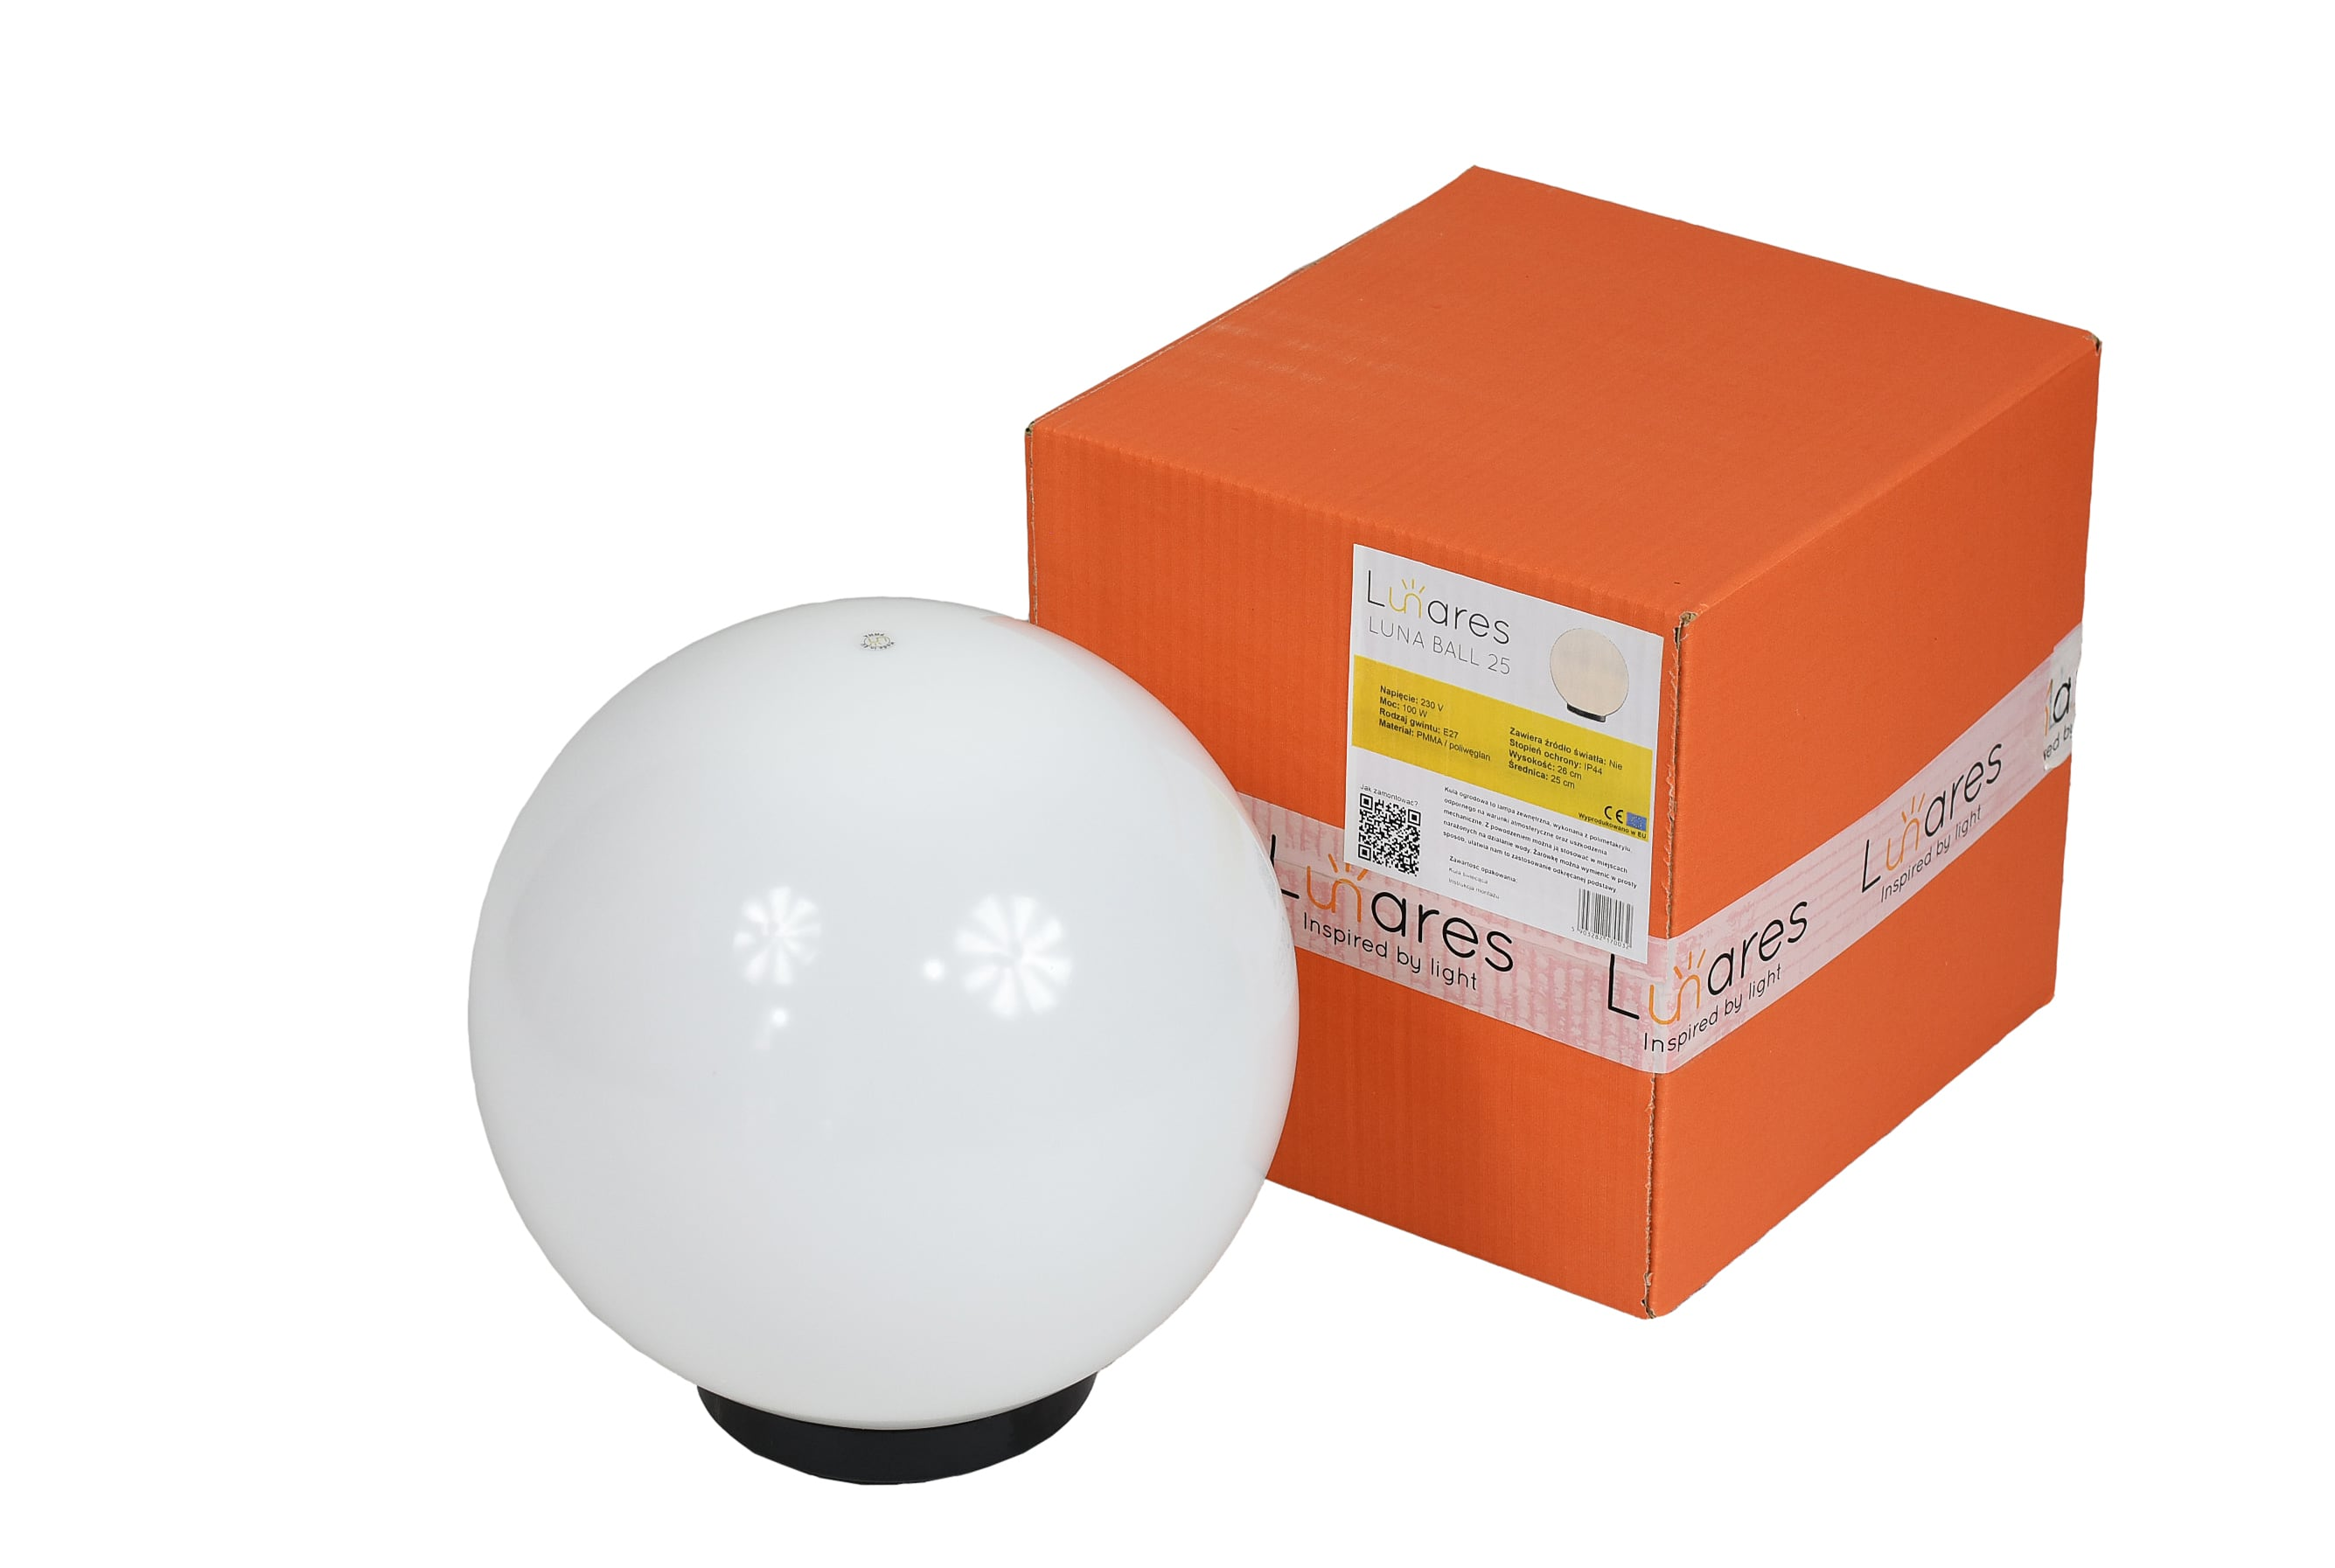 Garden lamp Luna ball 25 cm, garden ball, shining ball, path lighting, classic style, white with gloss